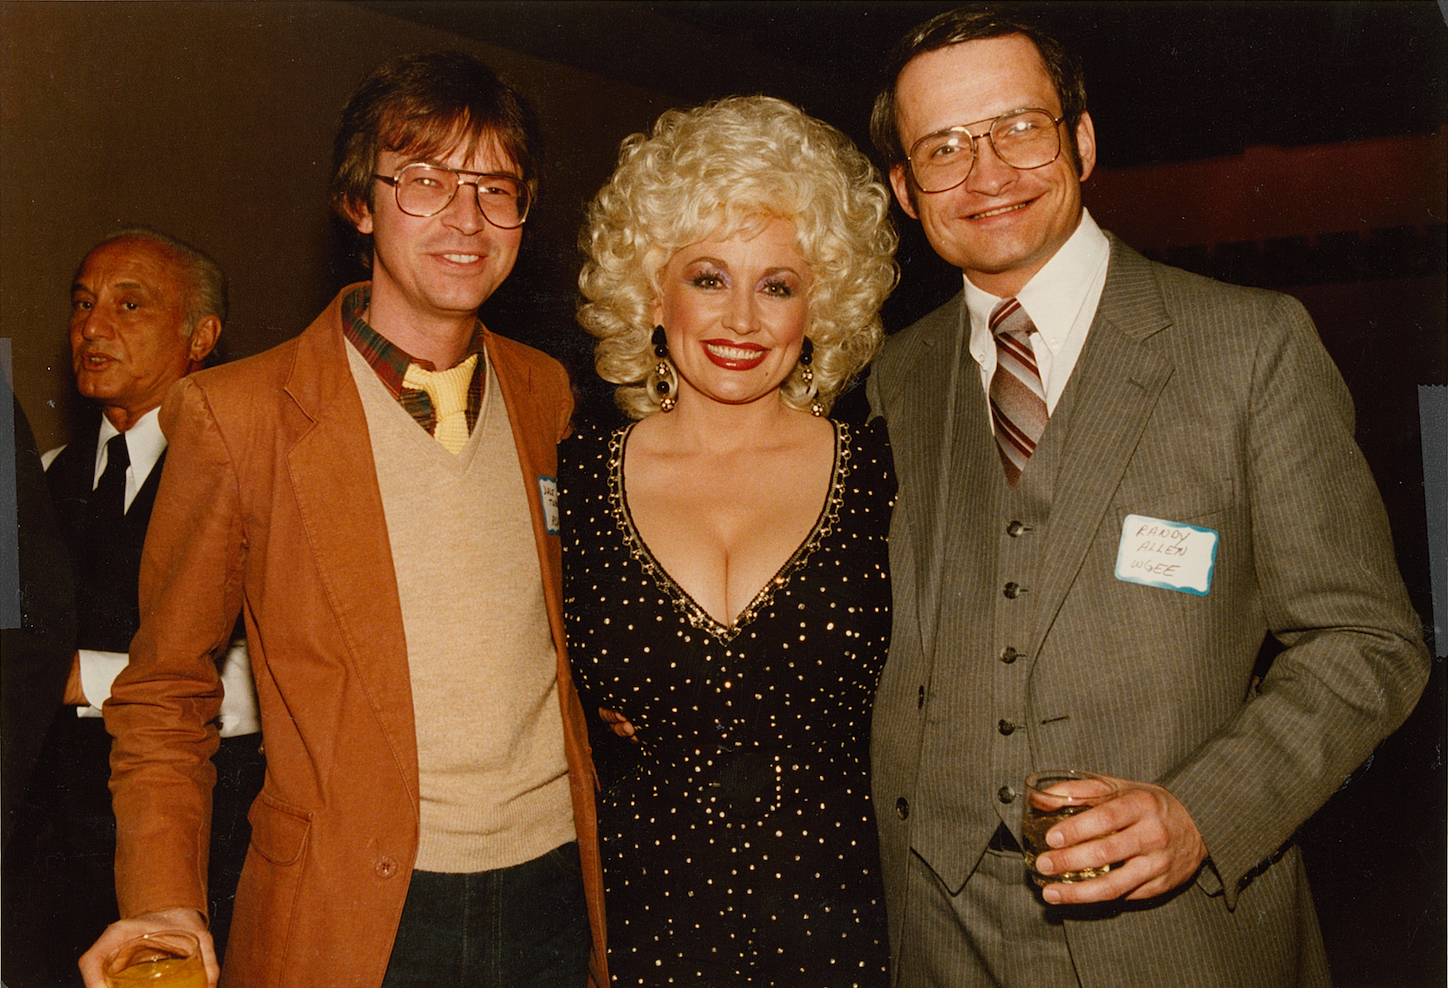 Dolly Parton and Dale Turner